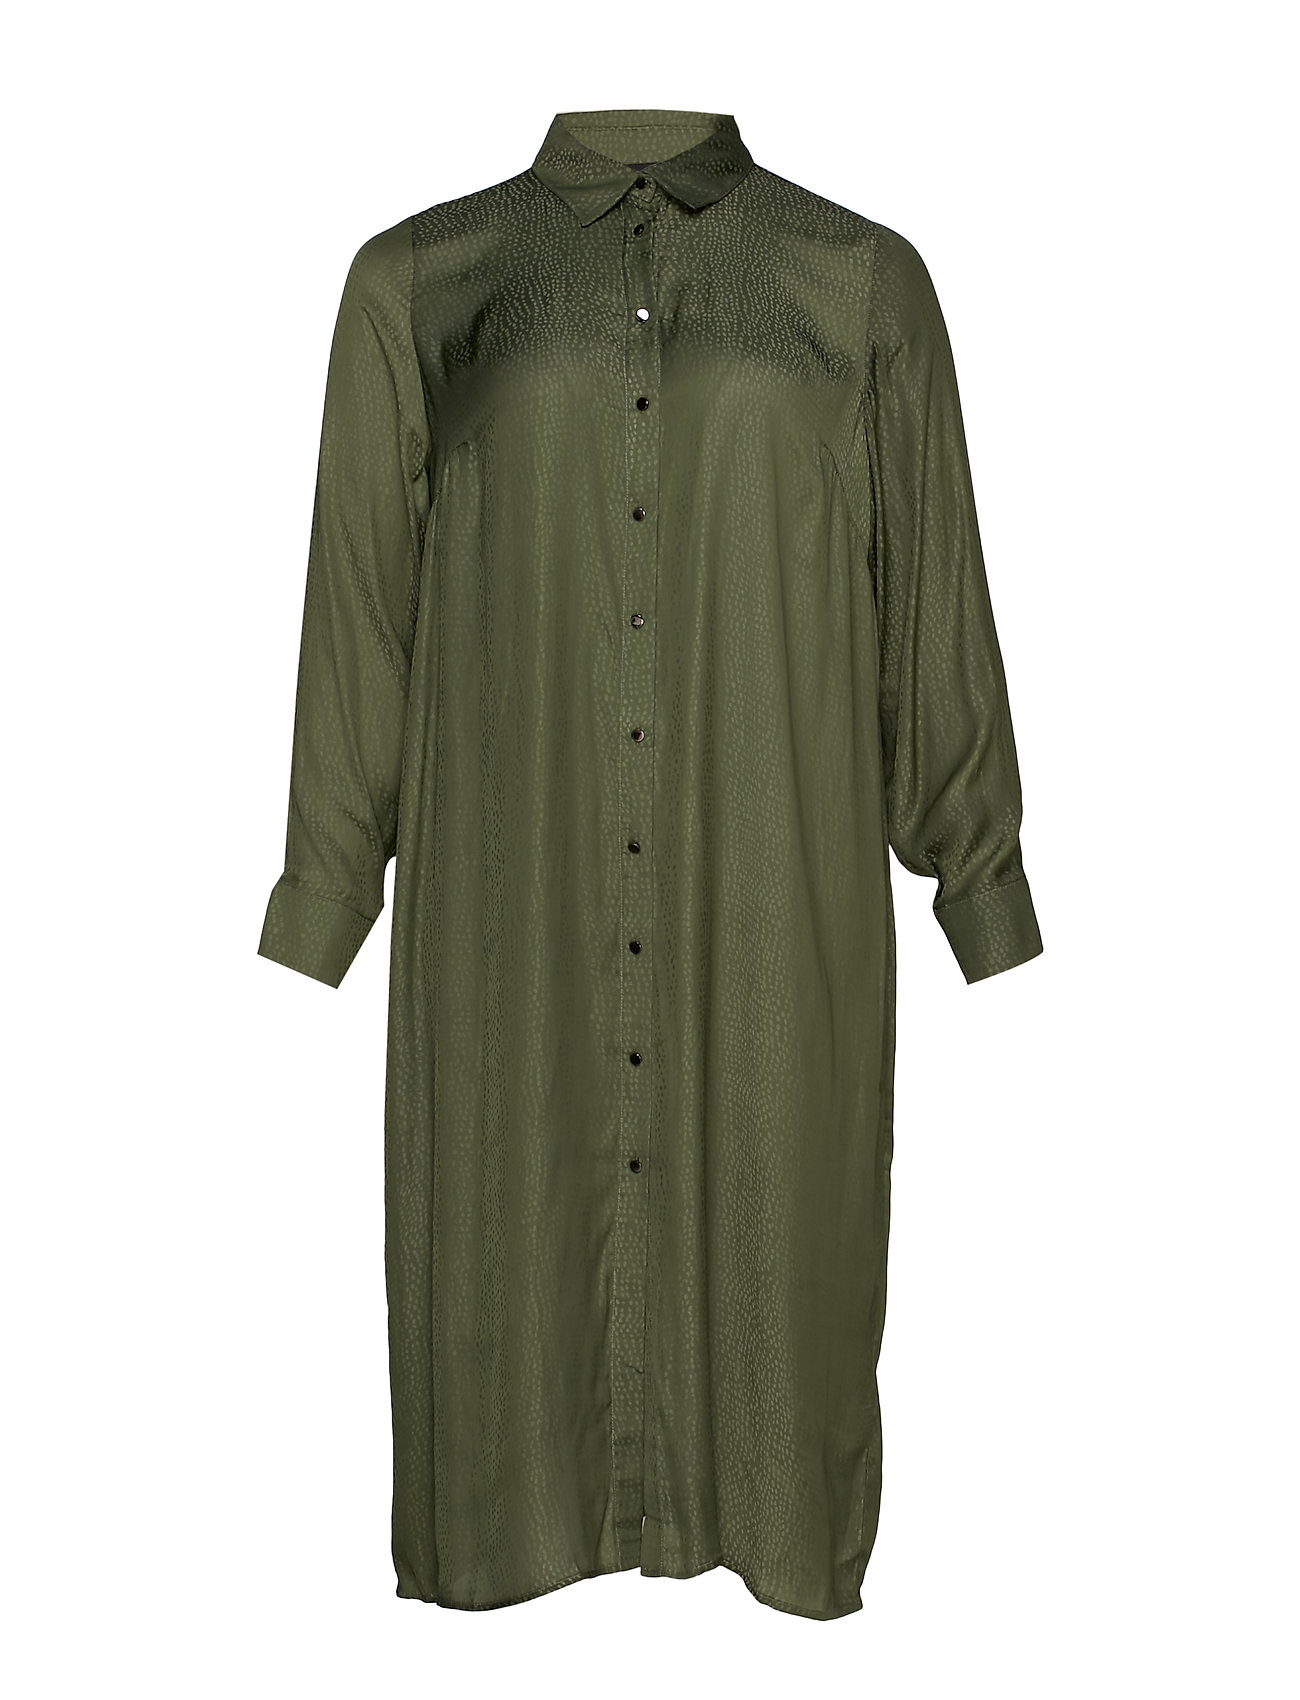 Zizzi MFREY, L/S, LONG SHIRT - ARMY